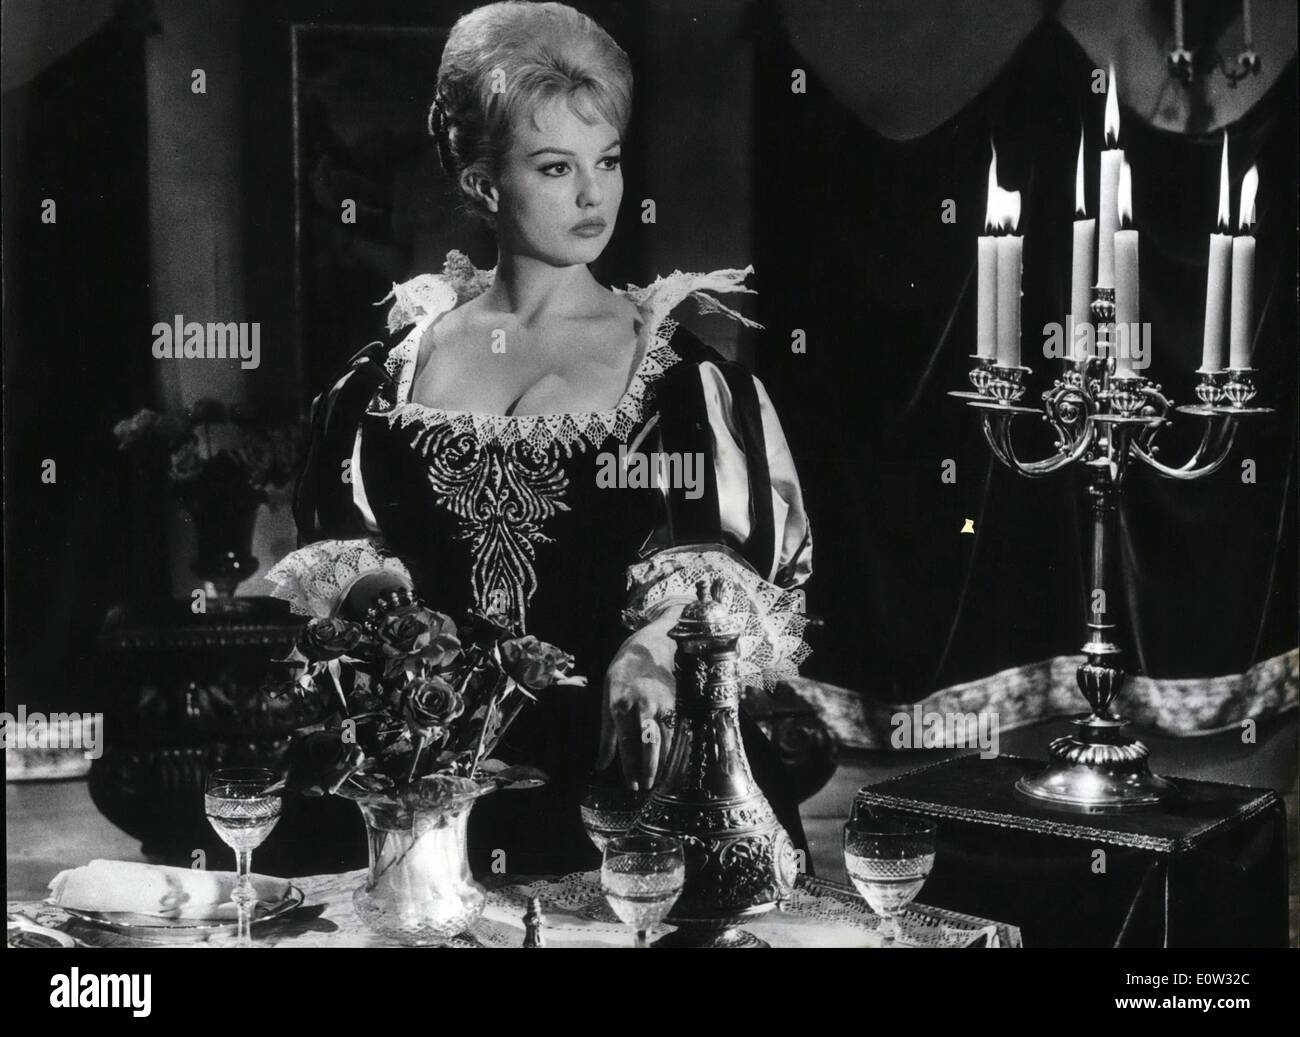 May 05, 1961 - New screen version of ''Three Musketeers'': A new screen version of Alexander Dumase famous novel ''The Thress Musketeers'' is now i the making in a Paris studio. Photo shows Mylene Demongeot impersonating Milady. - Stock Image